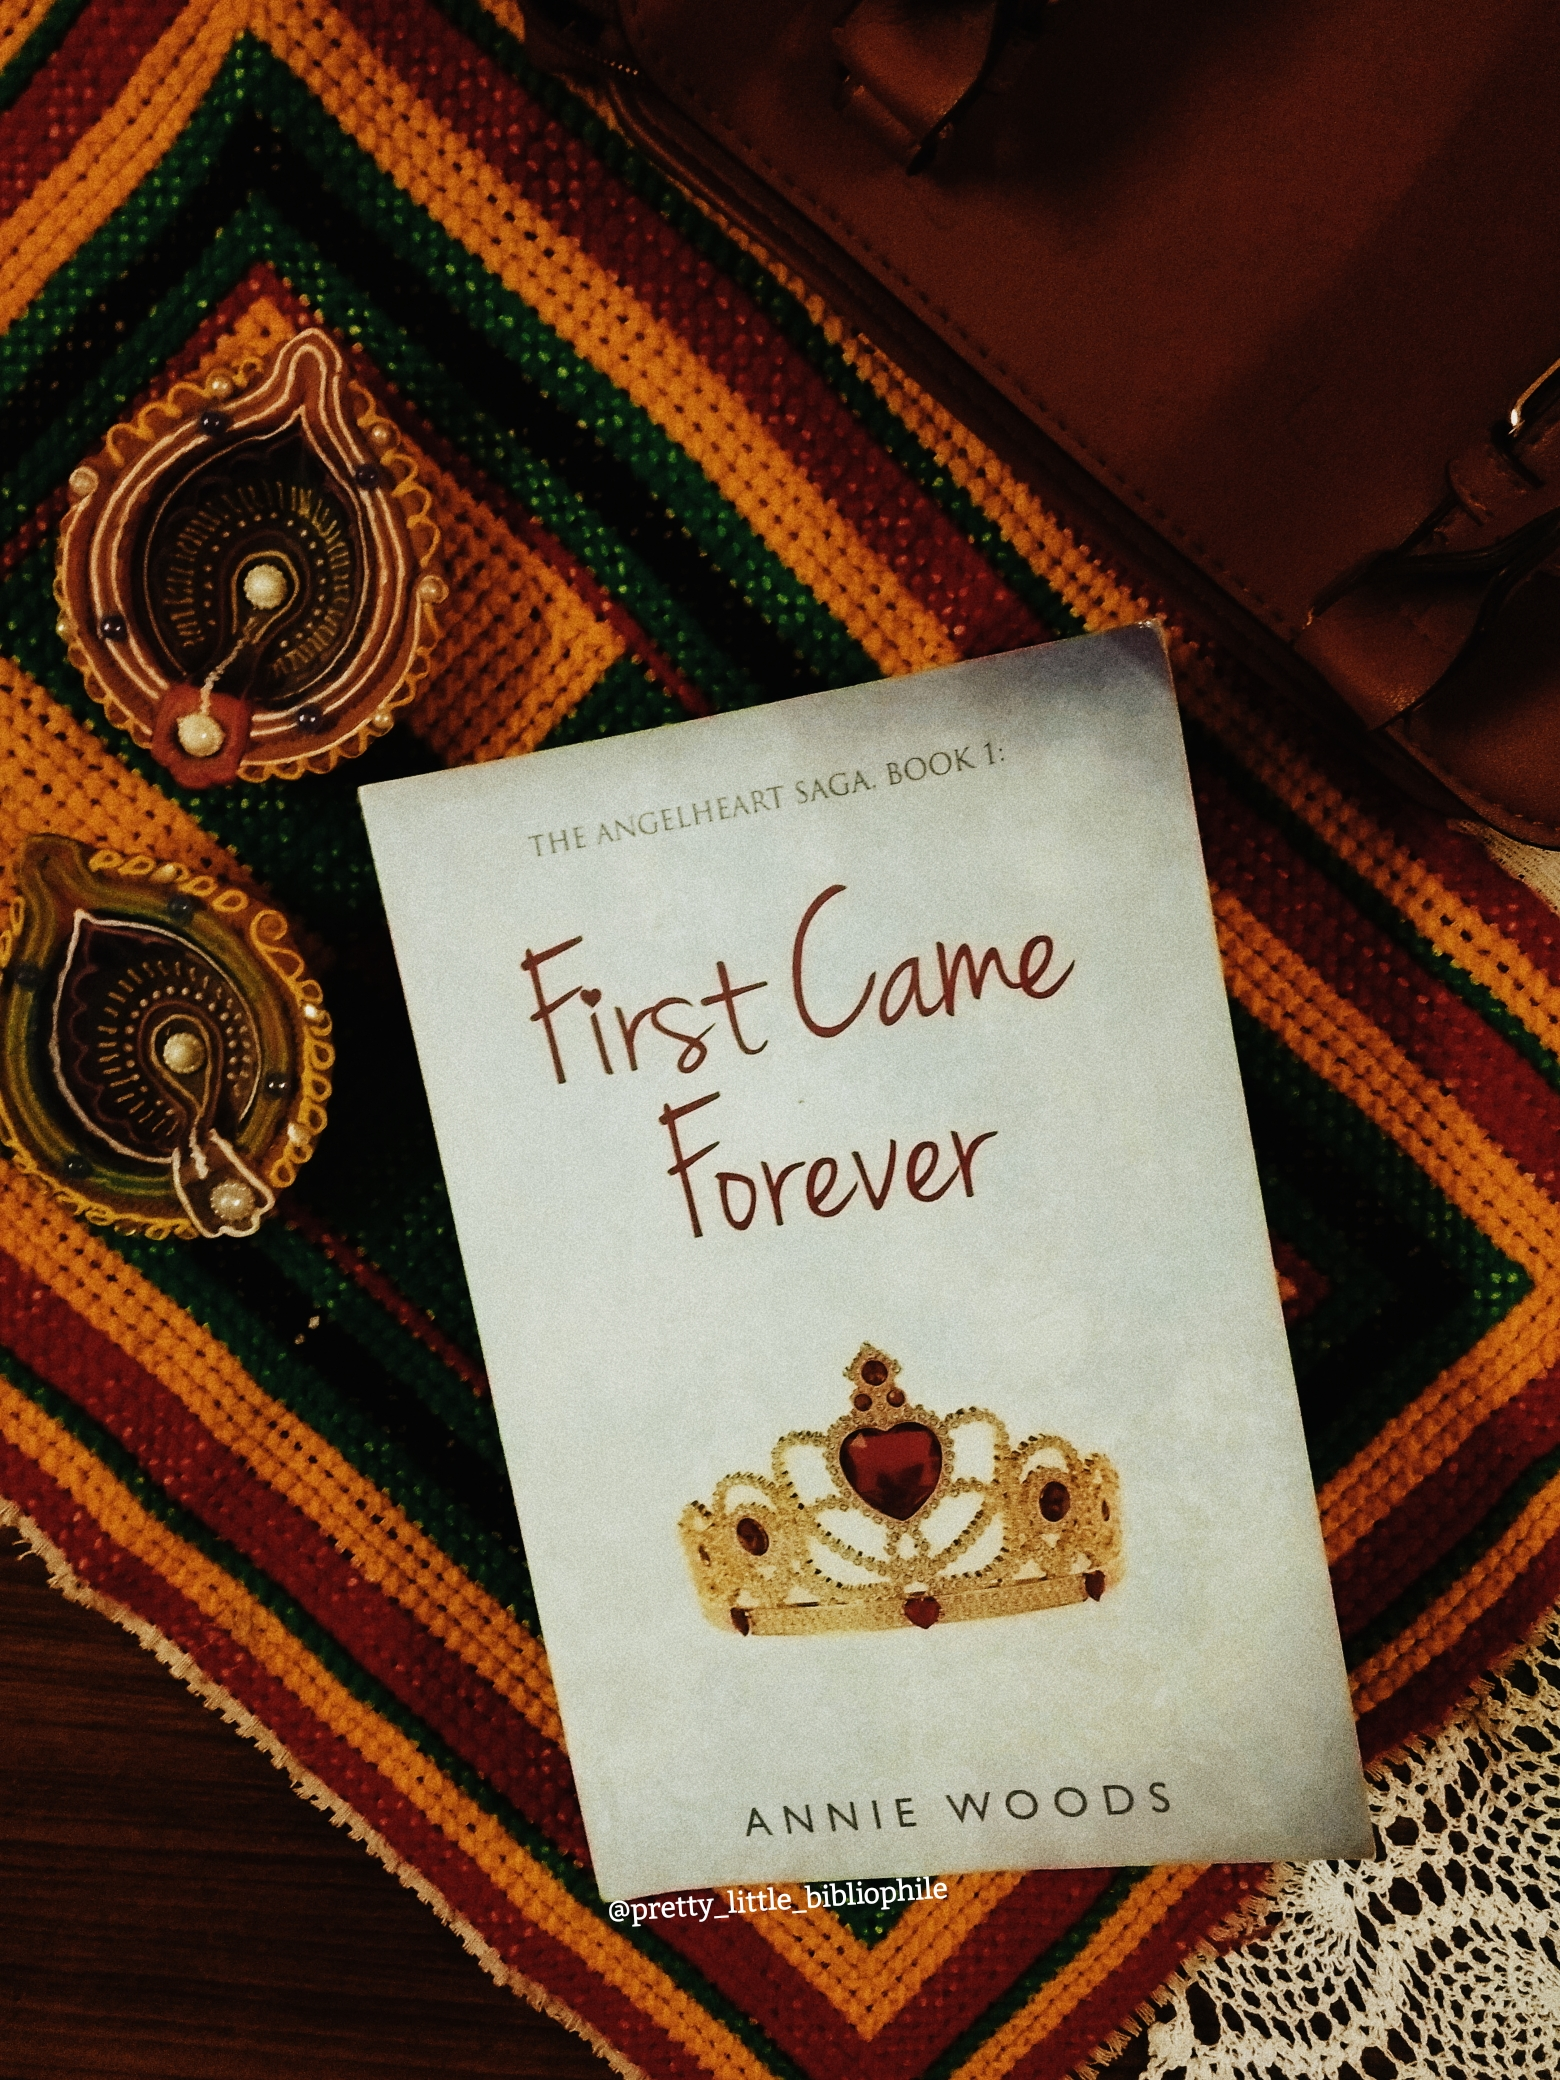 First Came Forever (The Angelheart Saga I), Annie Woods, 2017